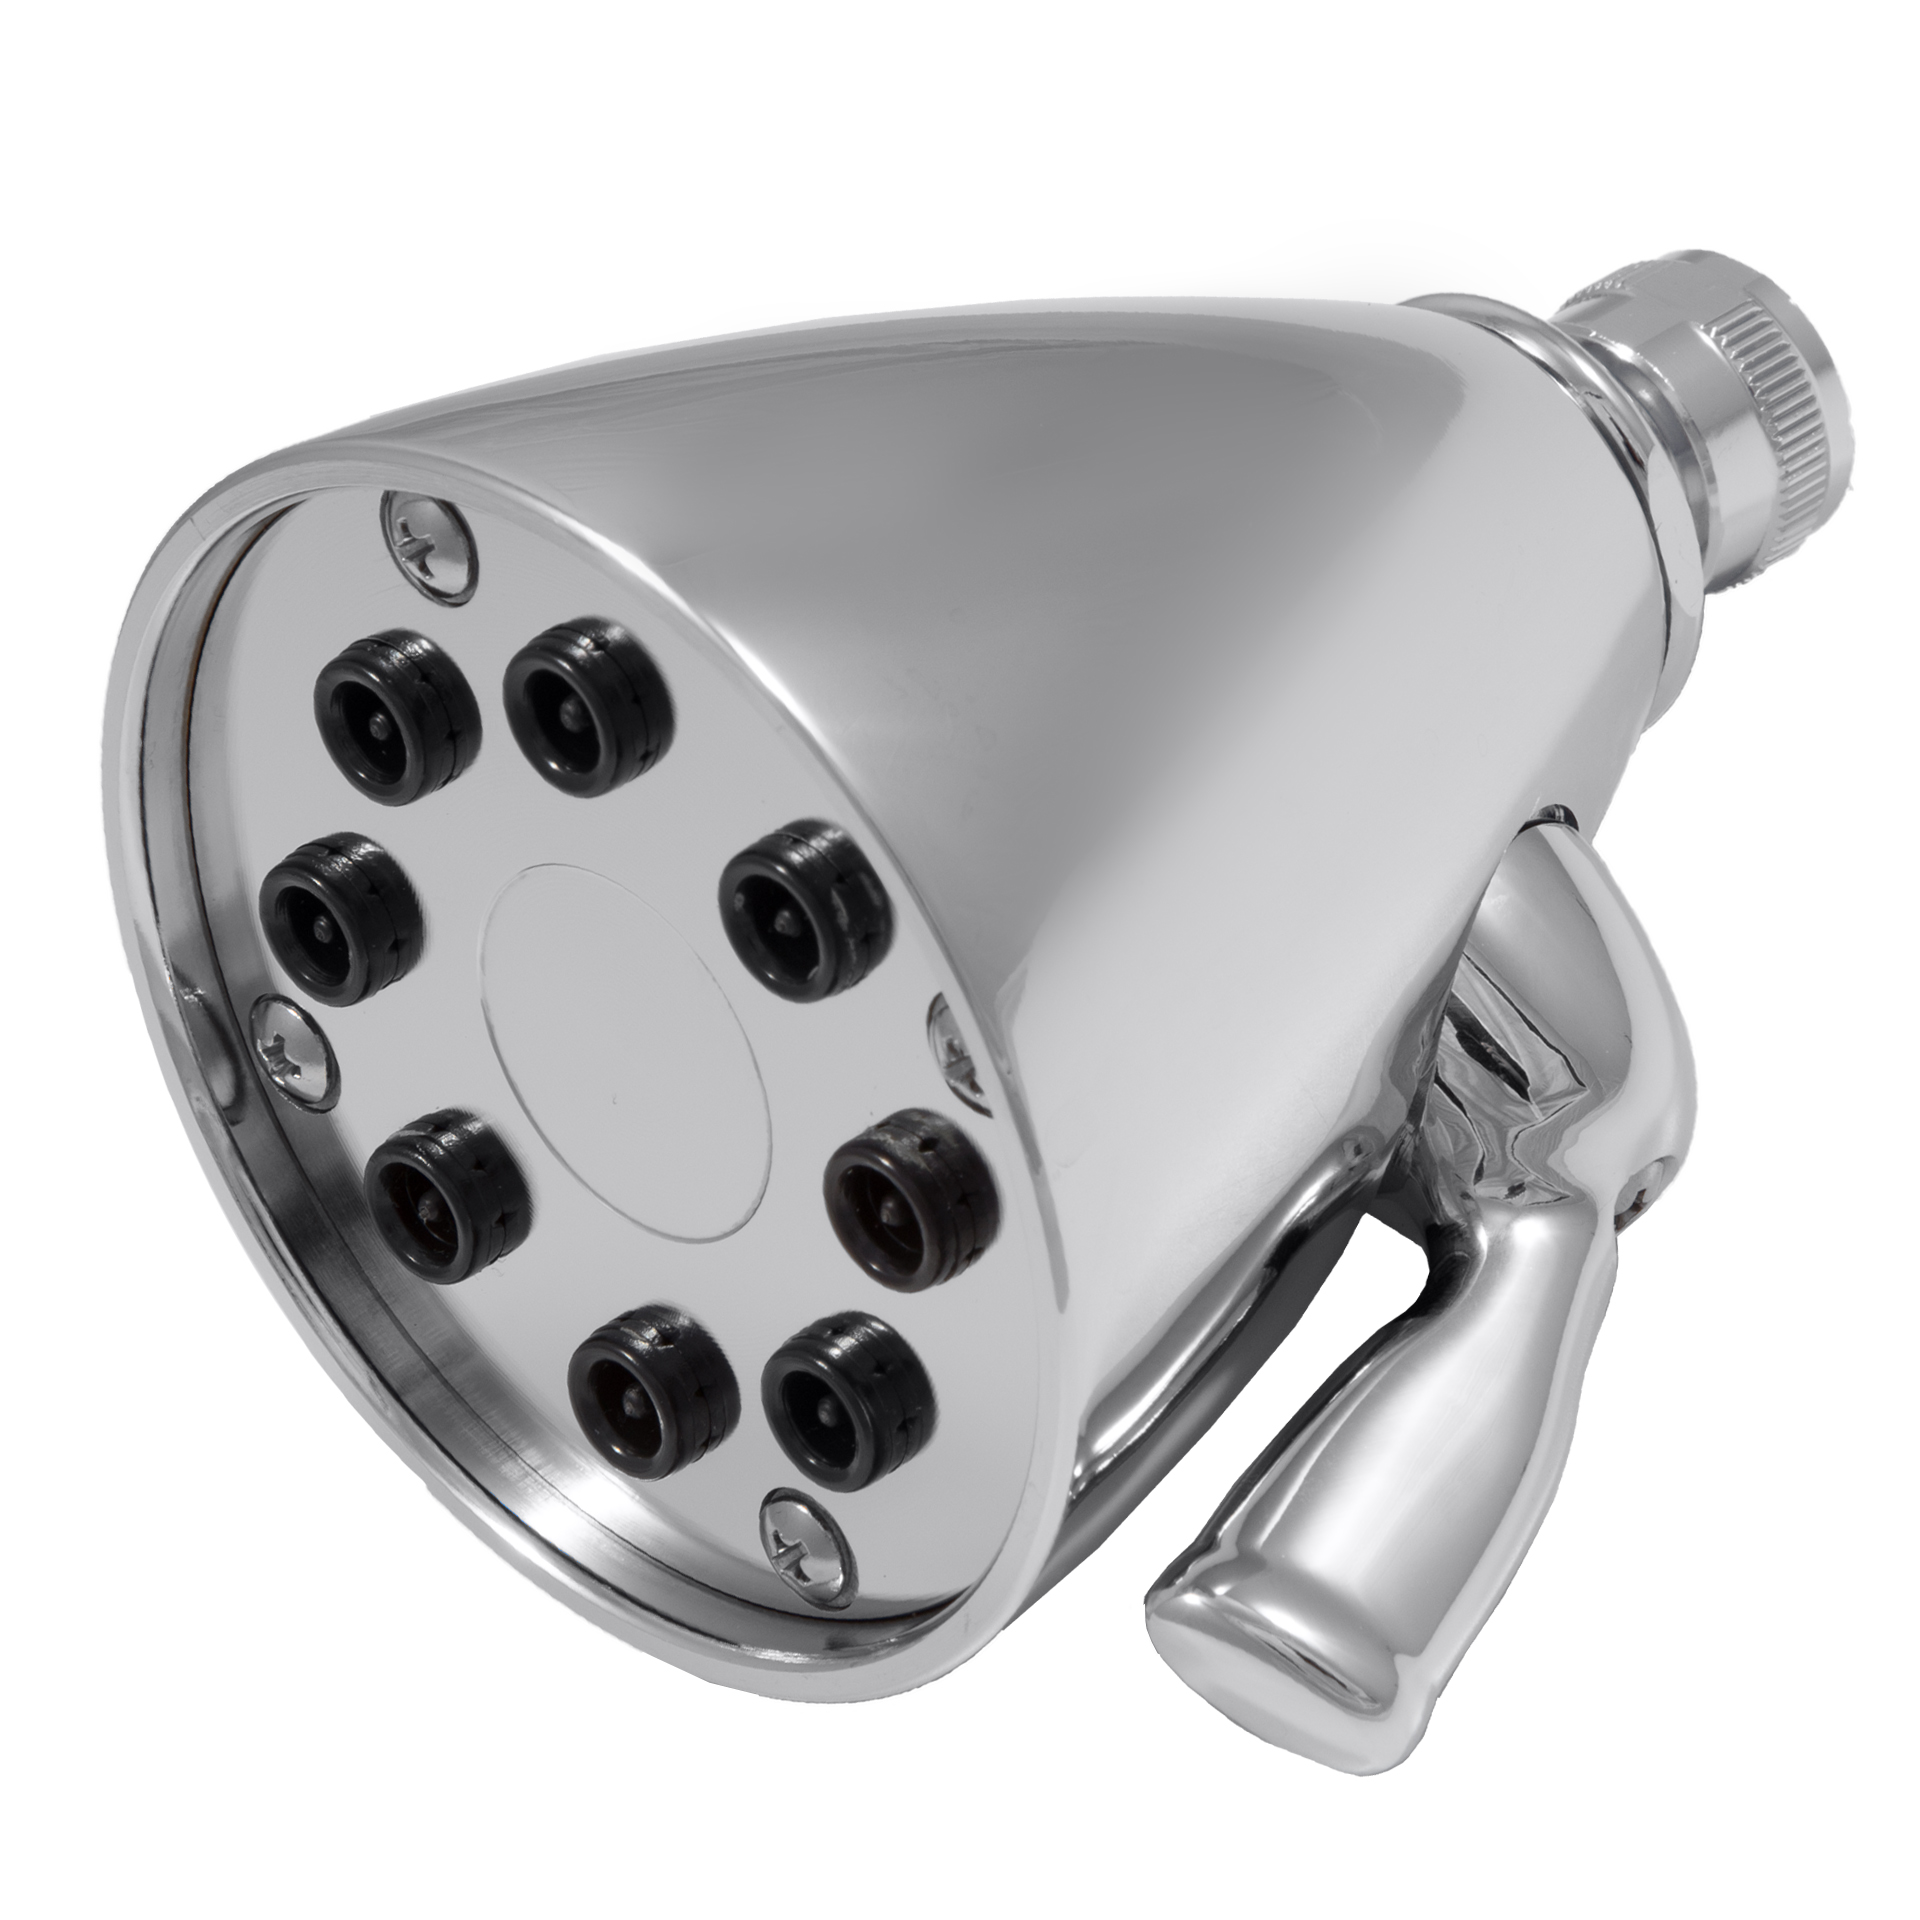 8 Jet_Chrome_giessdorf_Jet_adjustable_spray_shower_chrome (2)